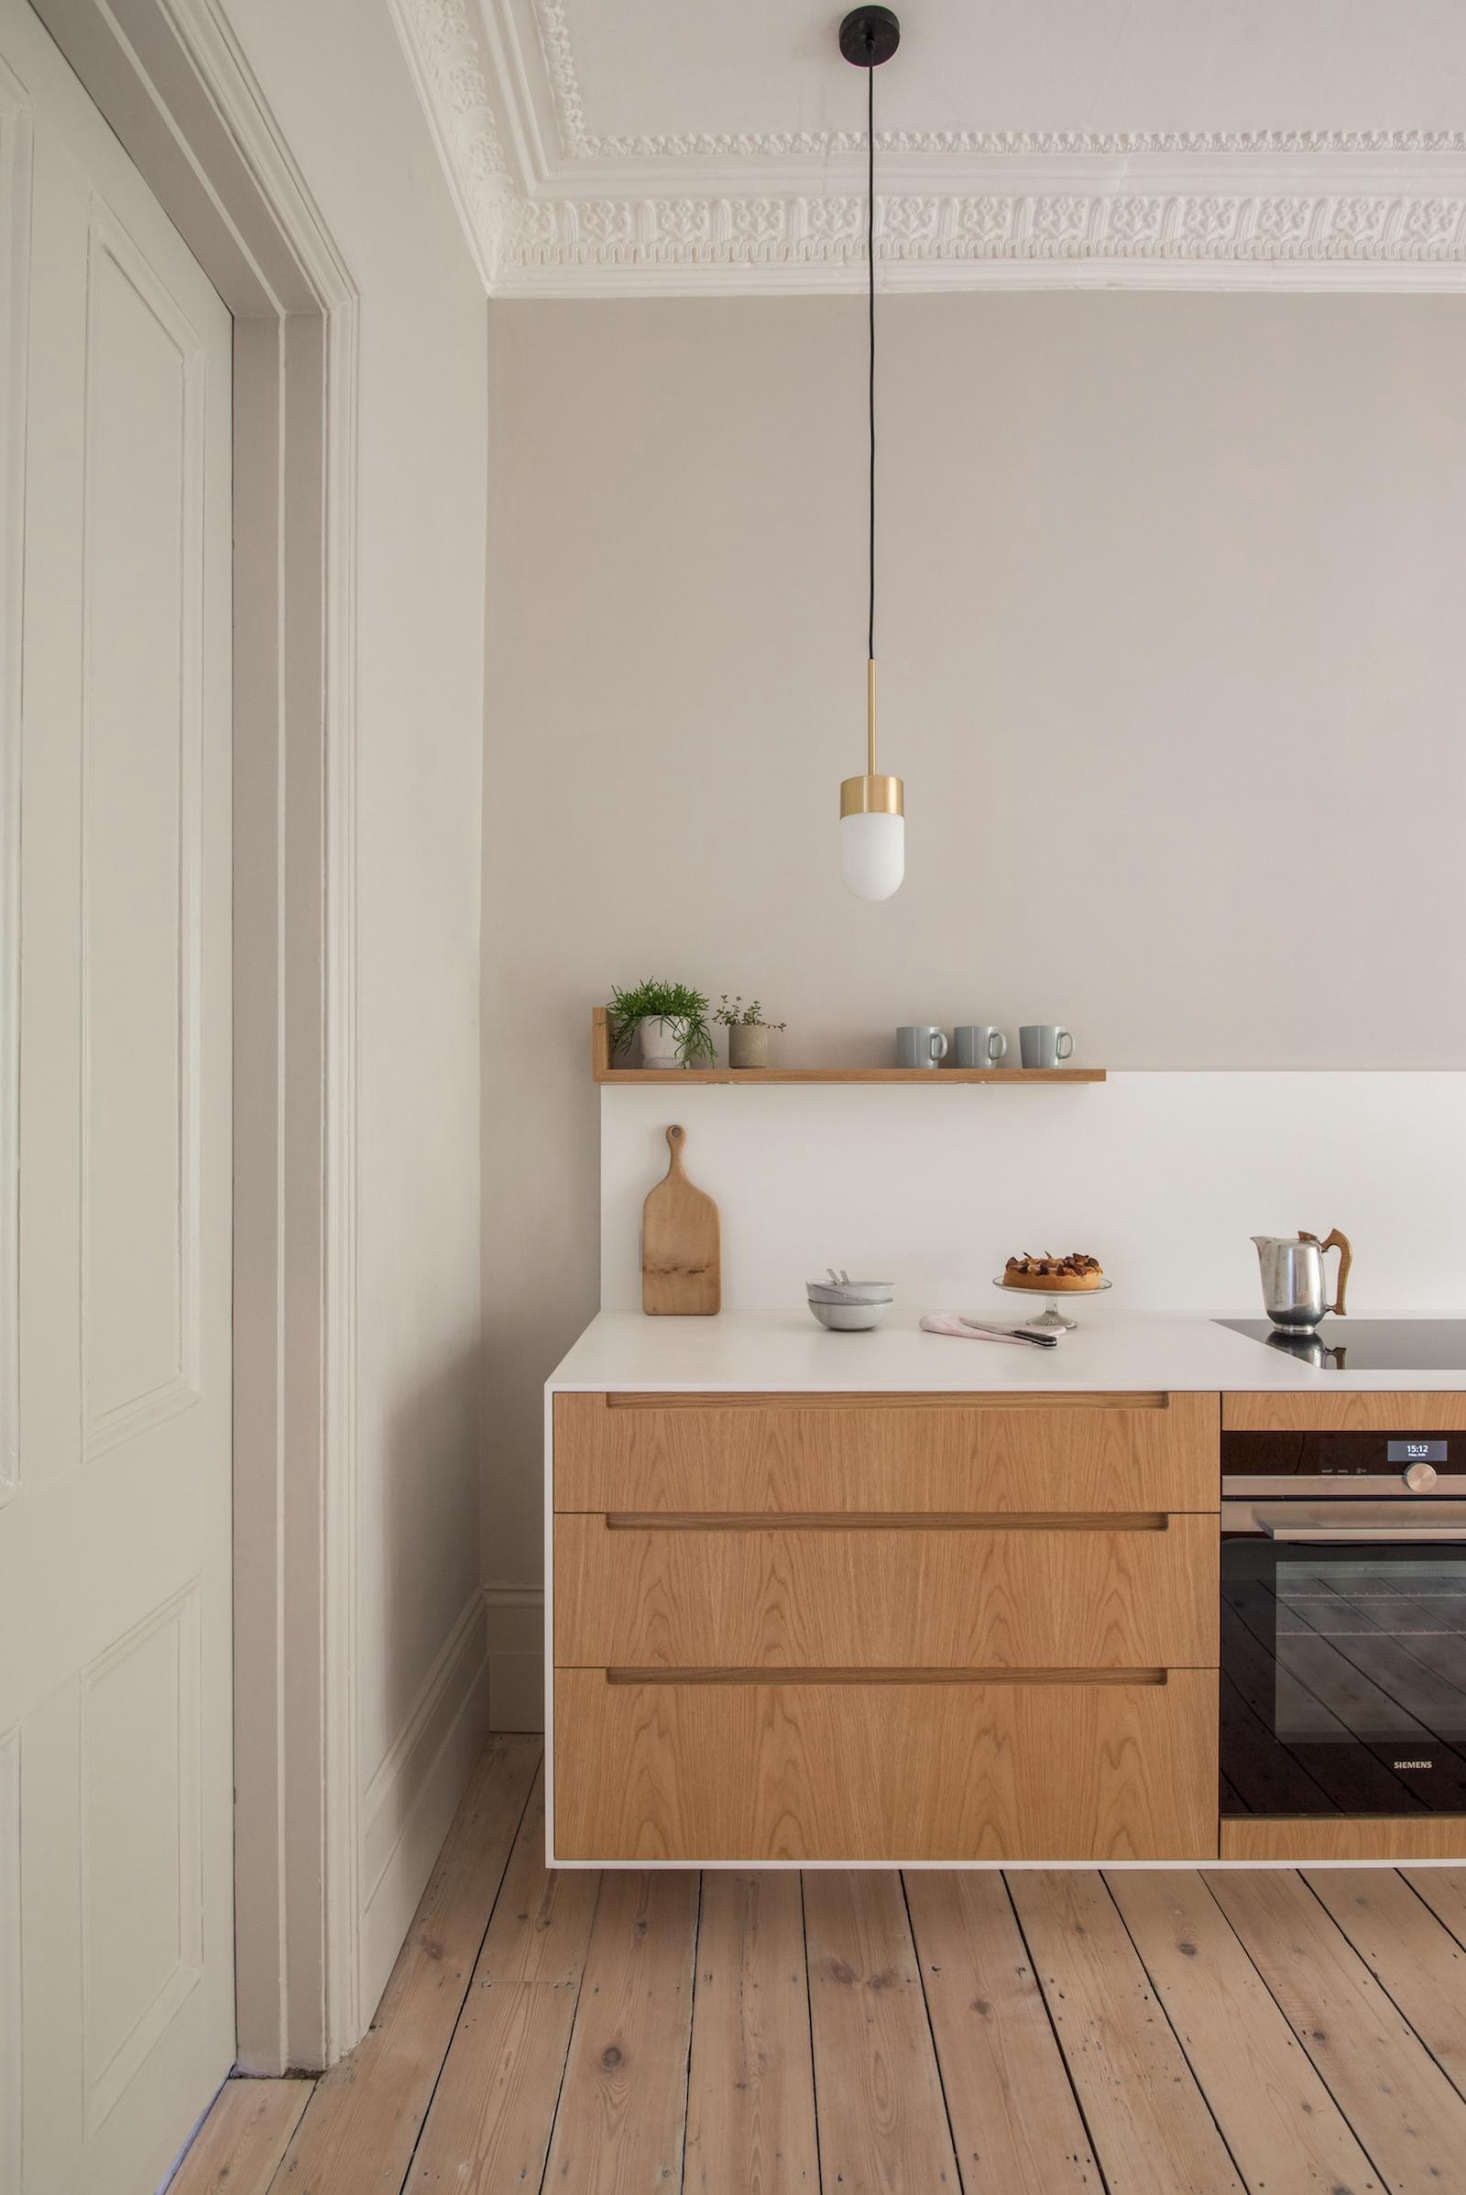 Remodeling 101 How To Choose Between A Range Or A Cooktop And Wall Oven In The Kitchen Remodelista